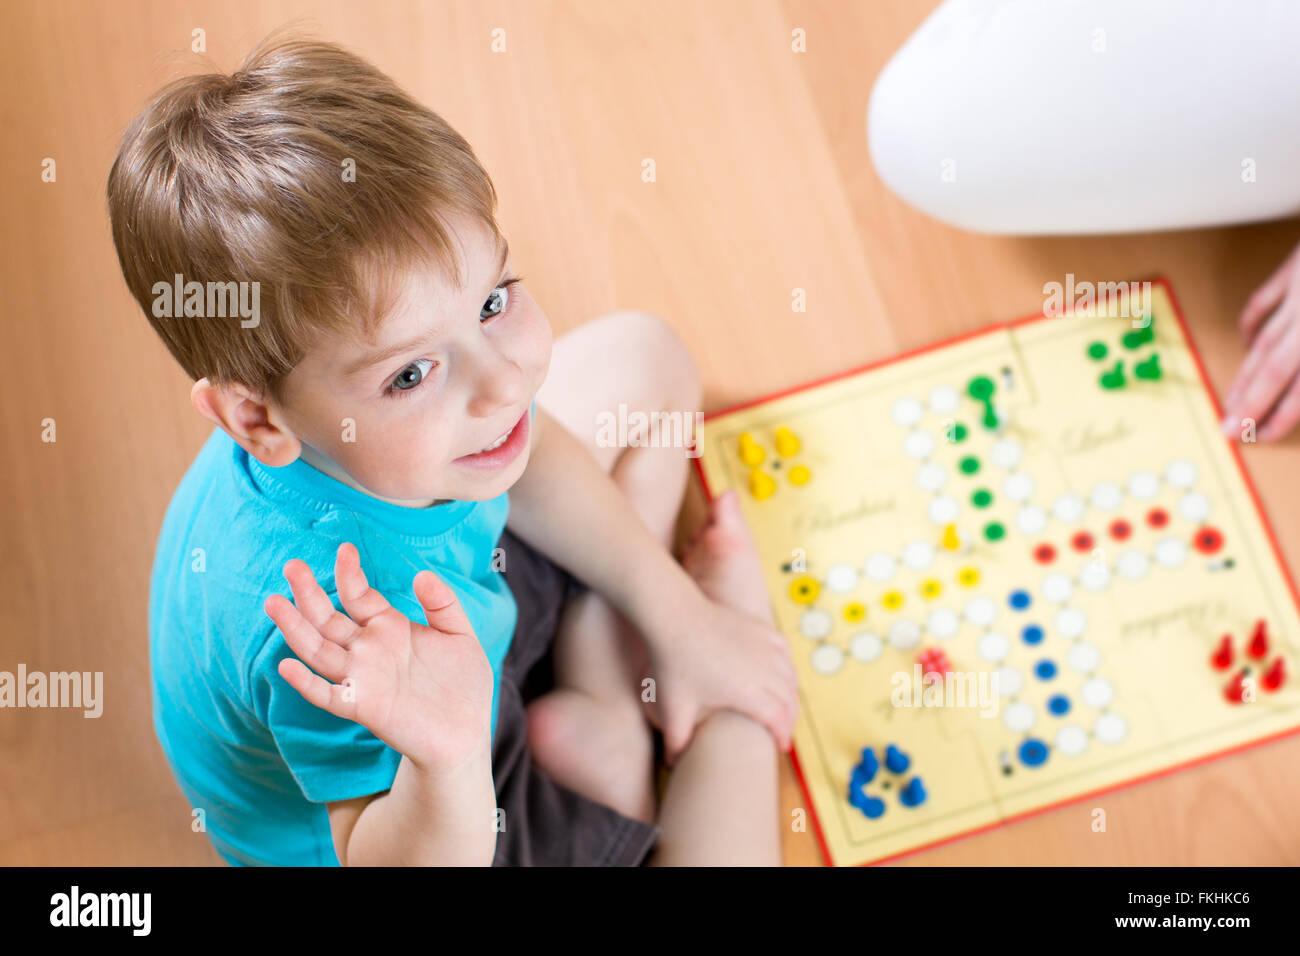 Child playing in board game sitting on floor Stock Photo